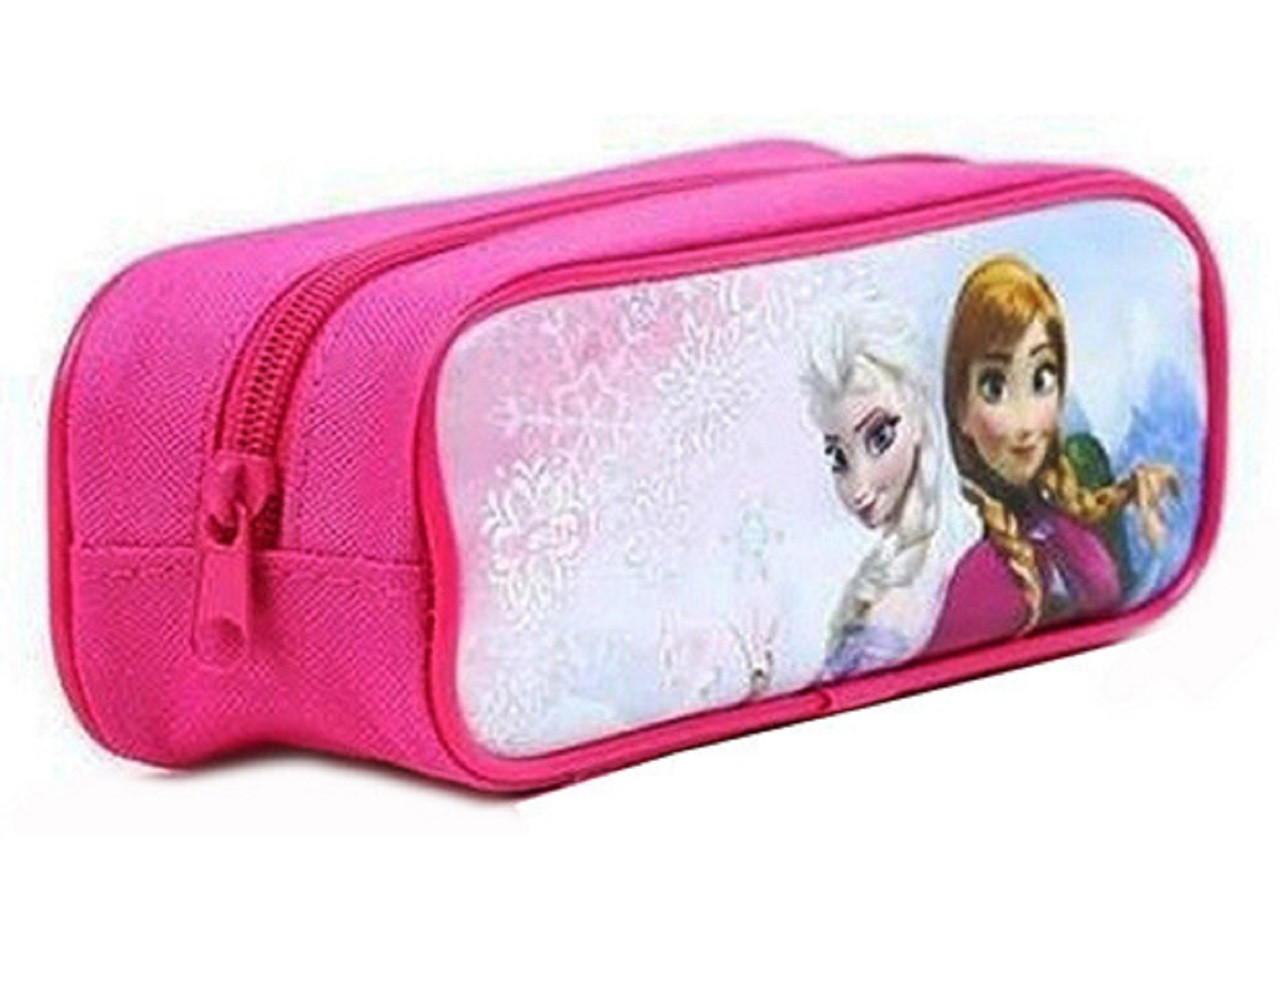 Frozen Princess Anna Elsa Cloth Pencil Case Pencil Box - Pink